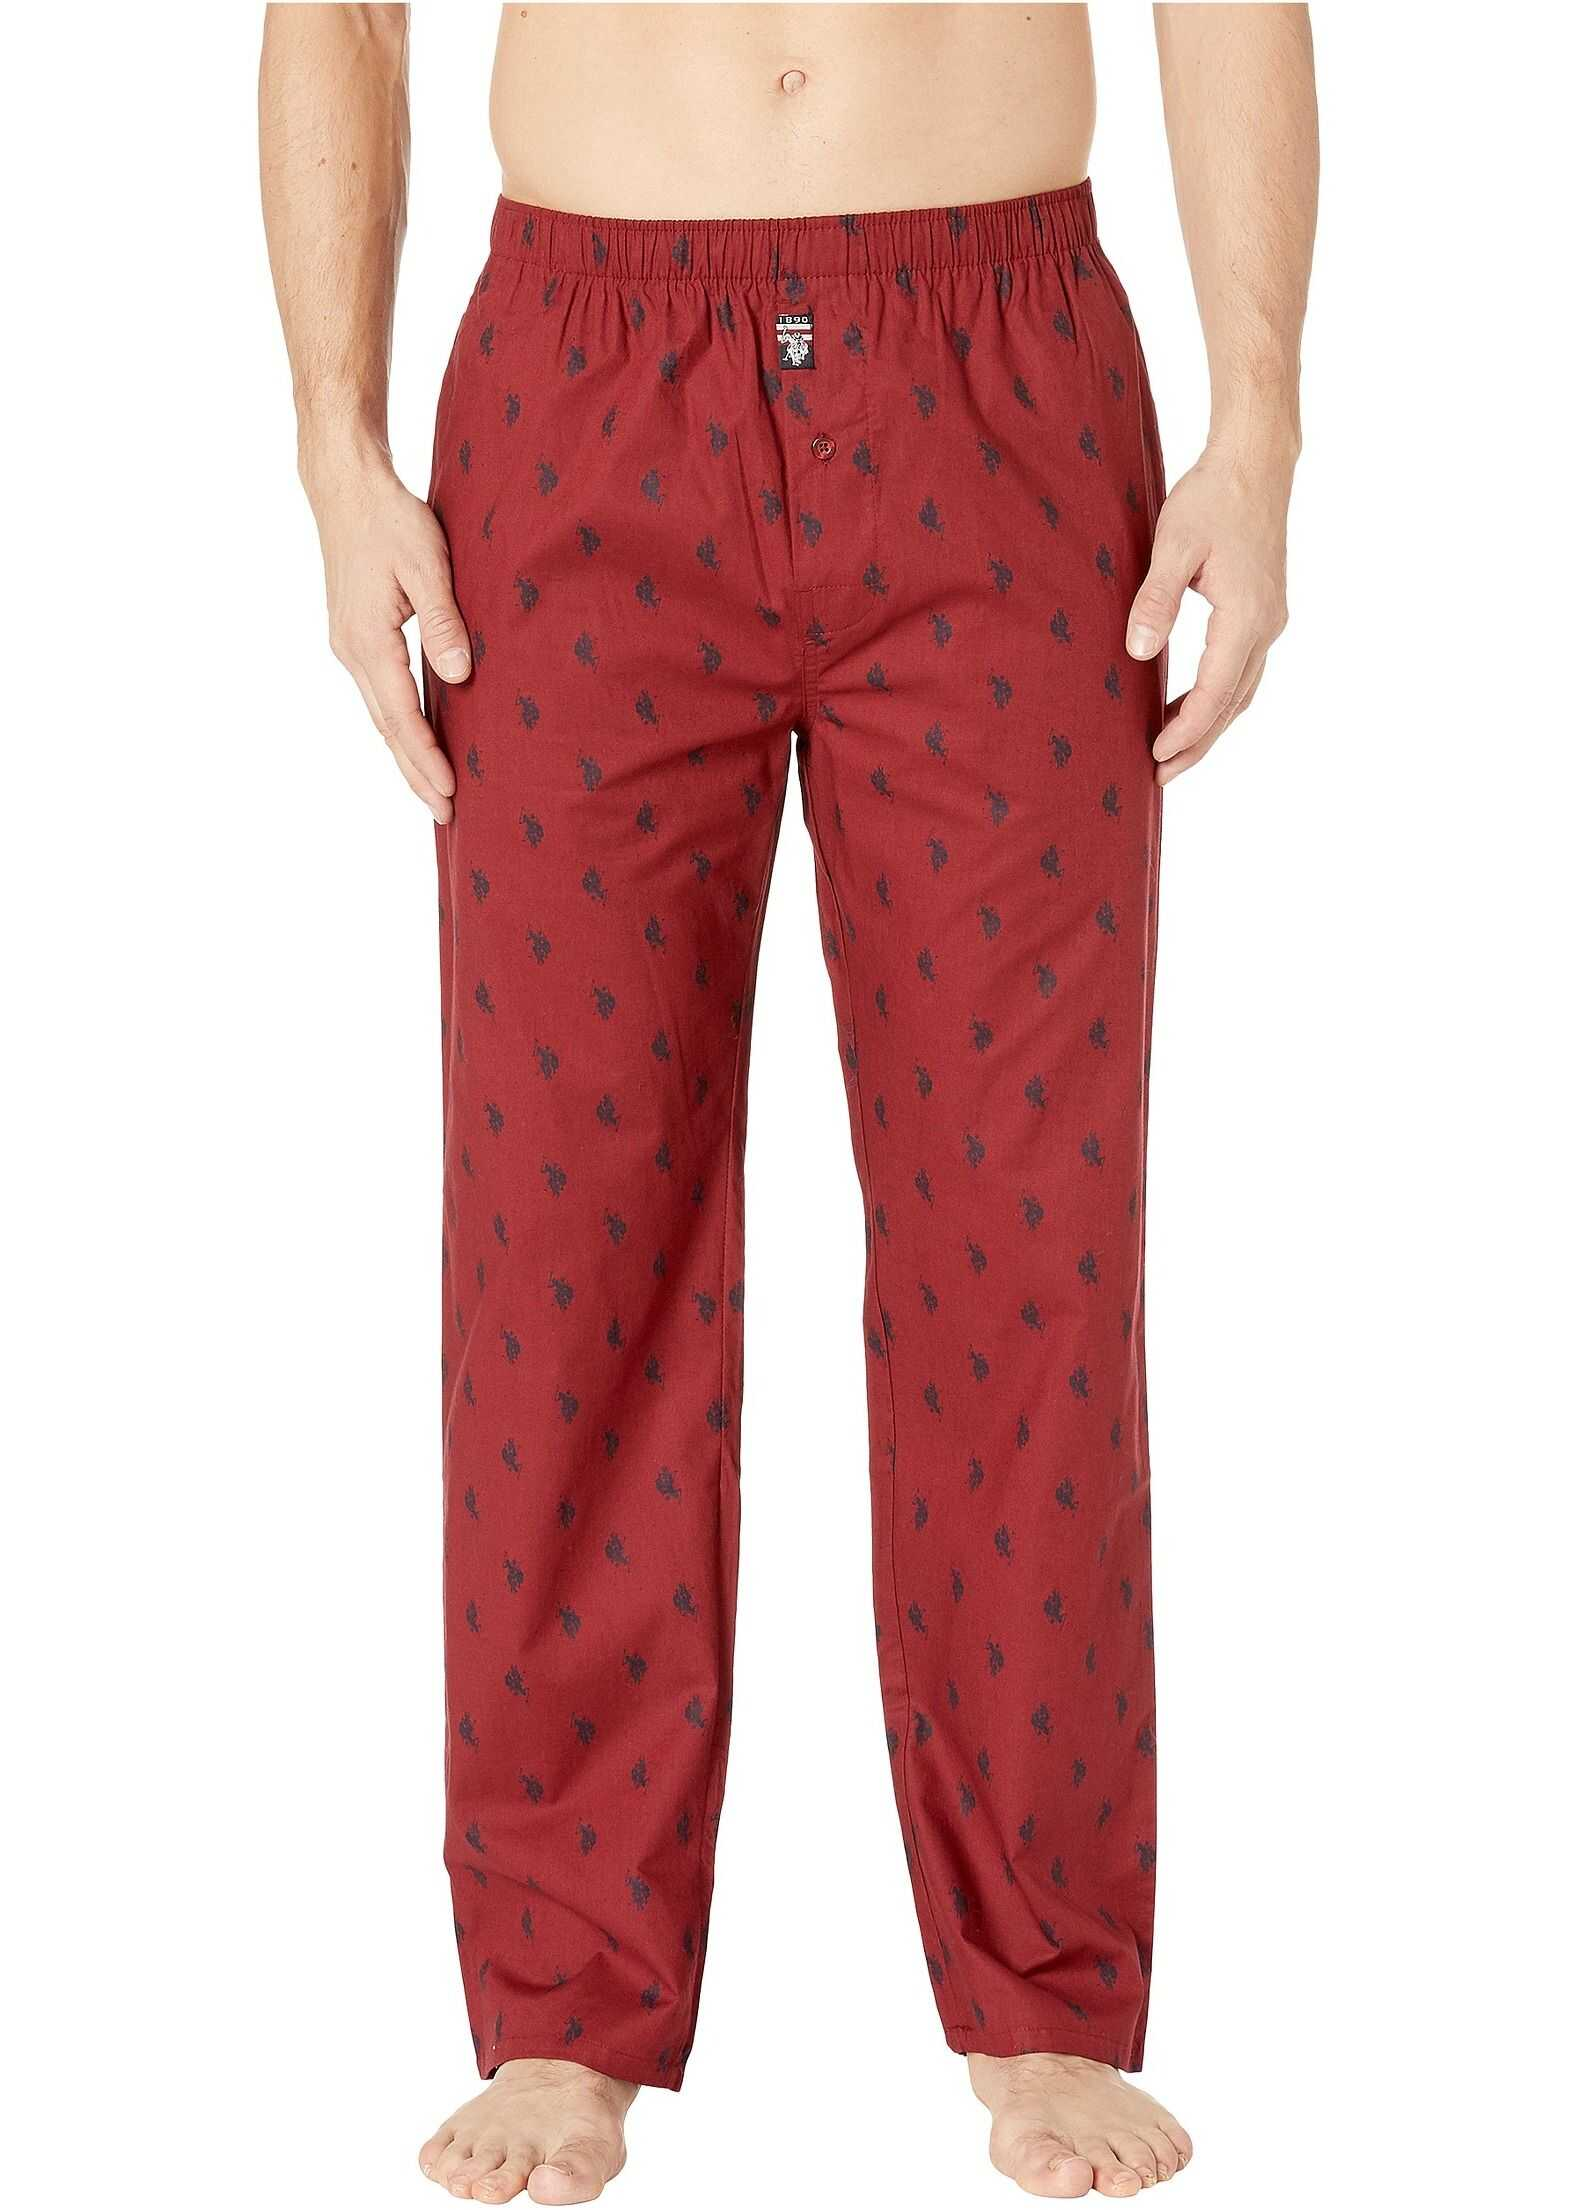 U.S. POLO ASSN. All Over Pony Woven Pants Pomegranite